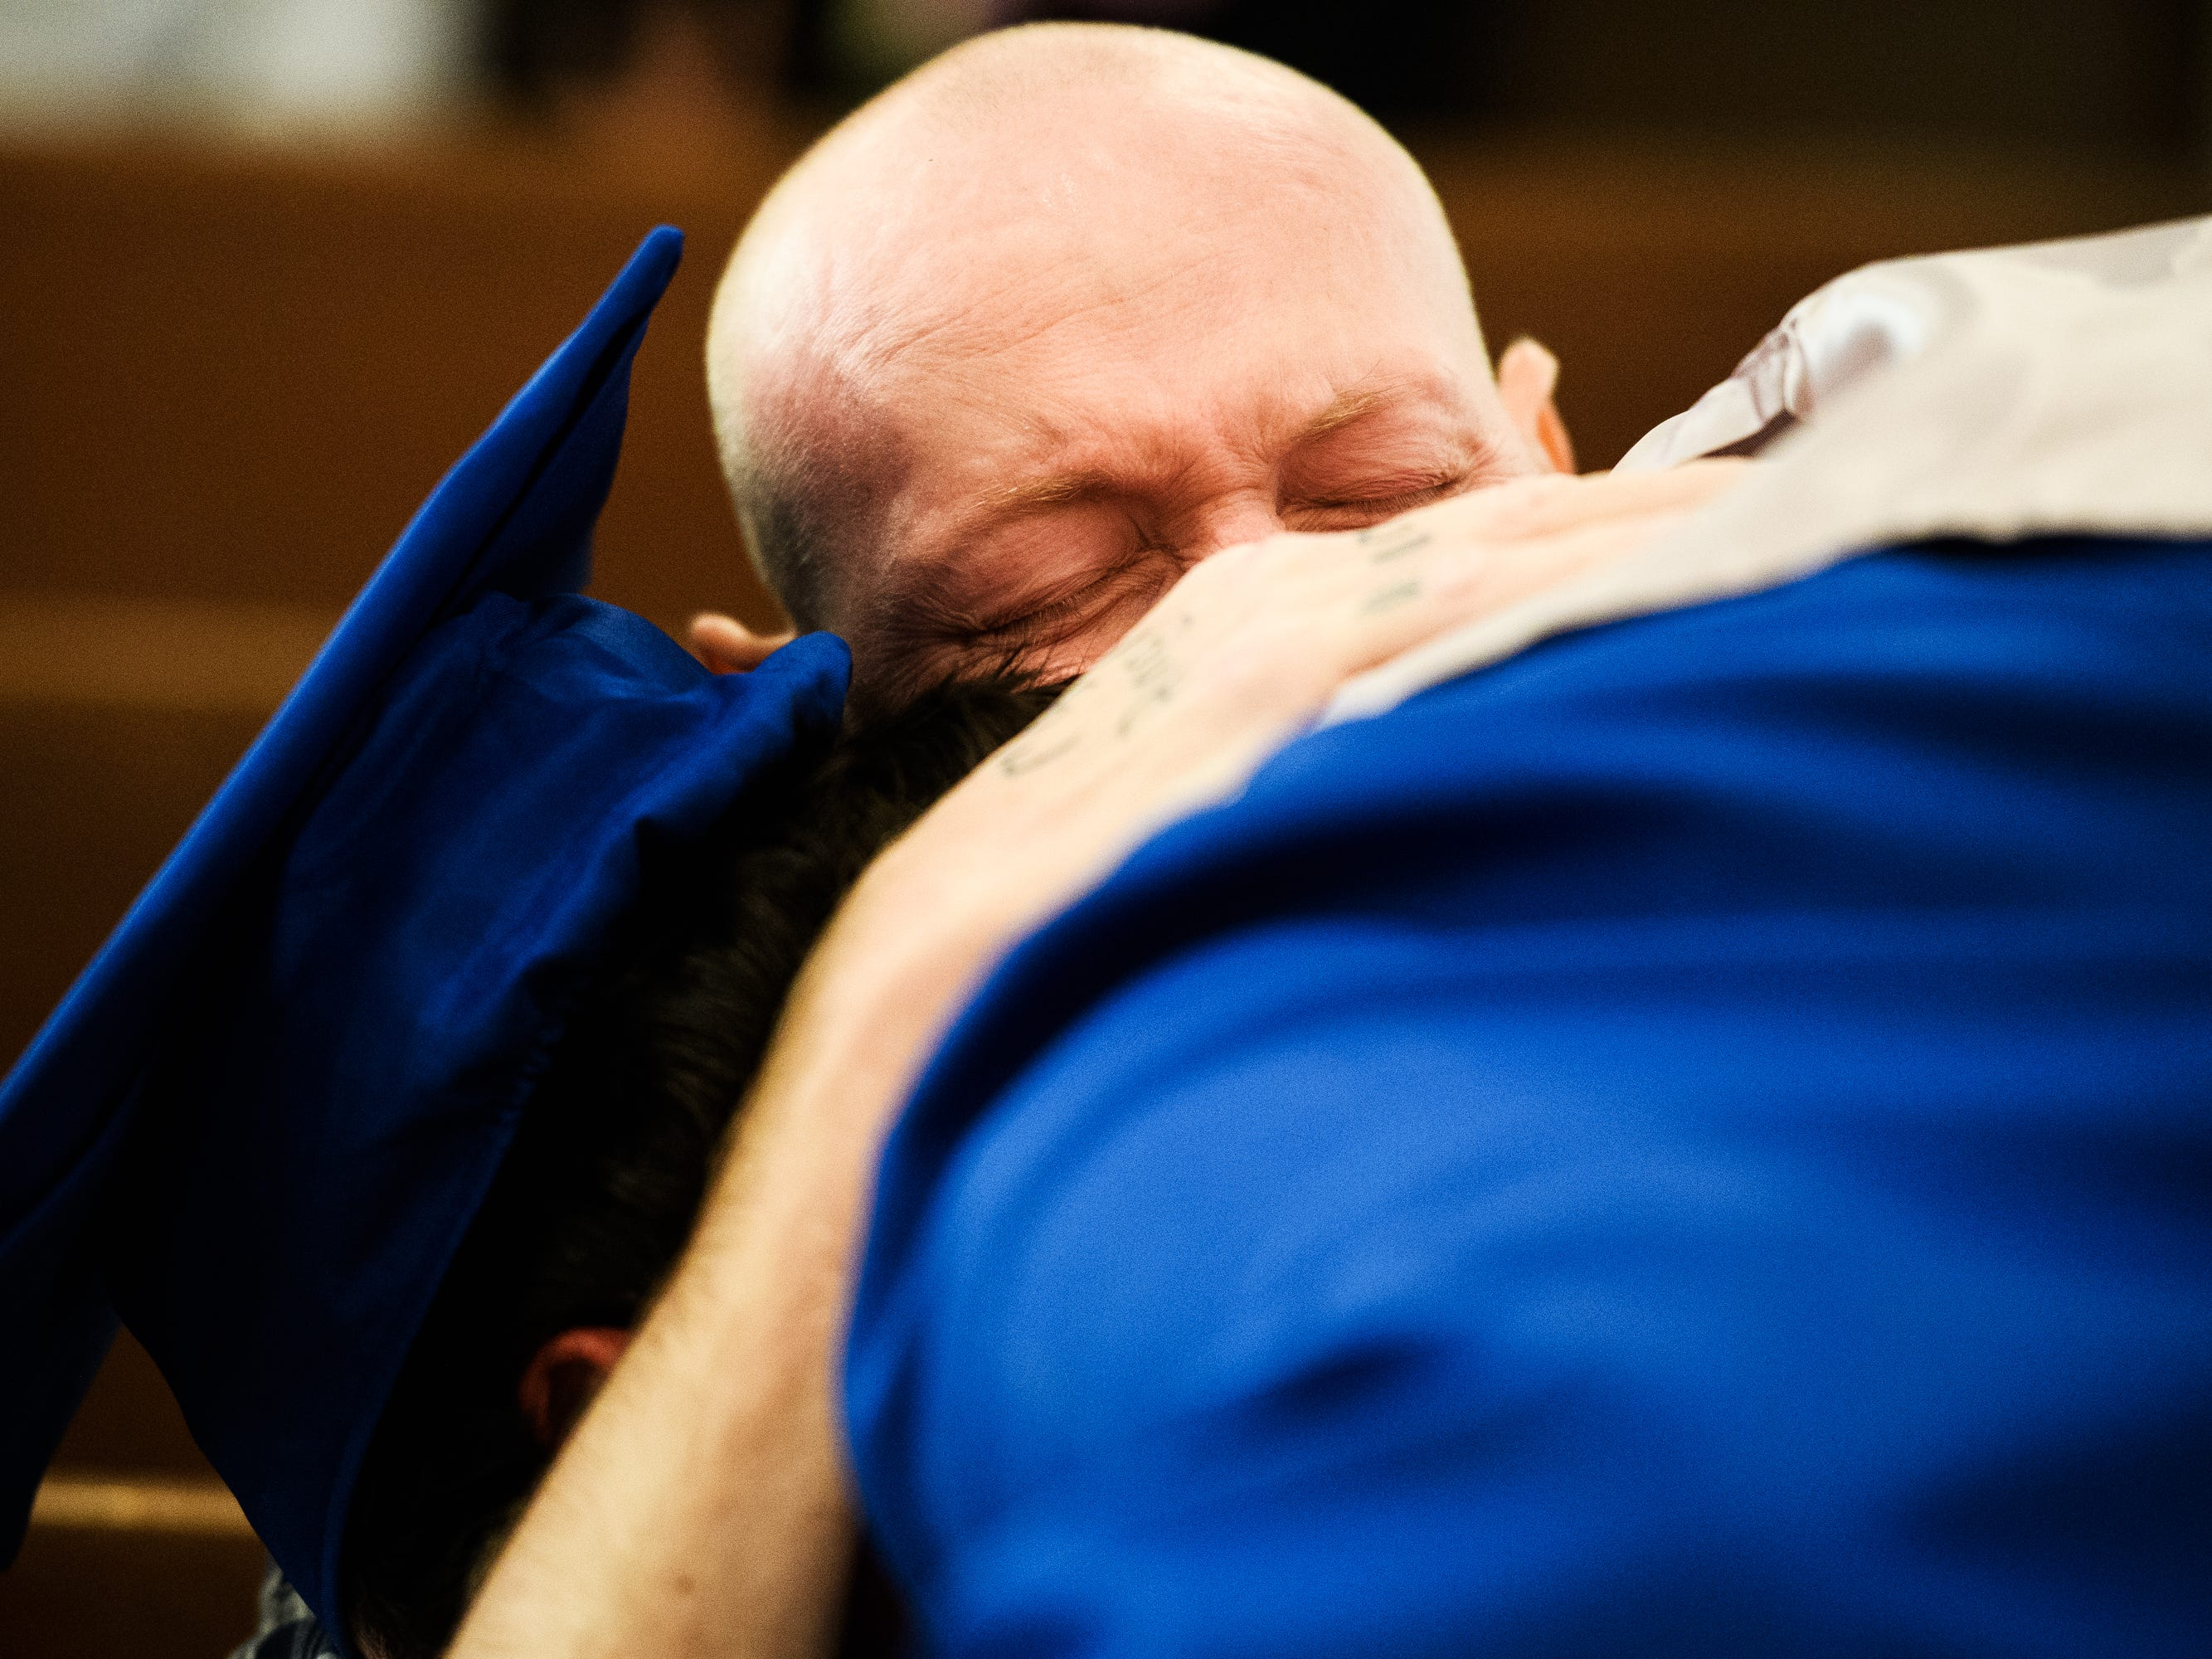 Nicholas Hughes hugs his son, Joshua Lee Vanghn, during an early commencement ceremony at Pleasant Grove Baptist Church on Tuesday, Oct. 9, 2018. The ceremony was put together to surprise Hughes, who is currently in hospice and wanted to see his son graduate.